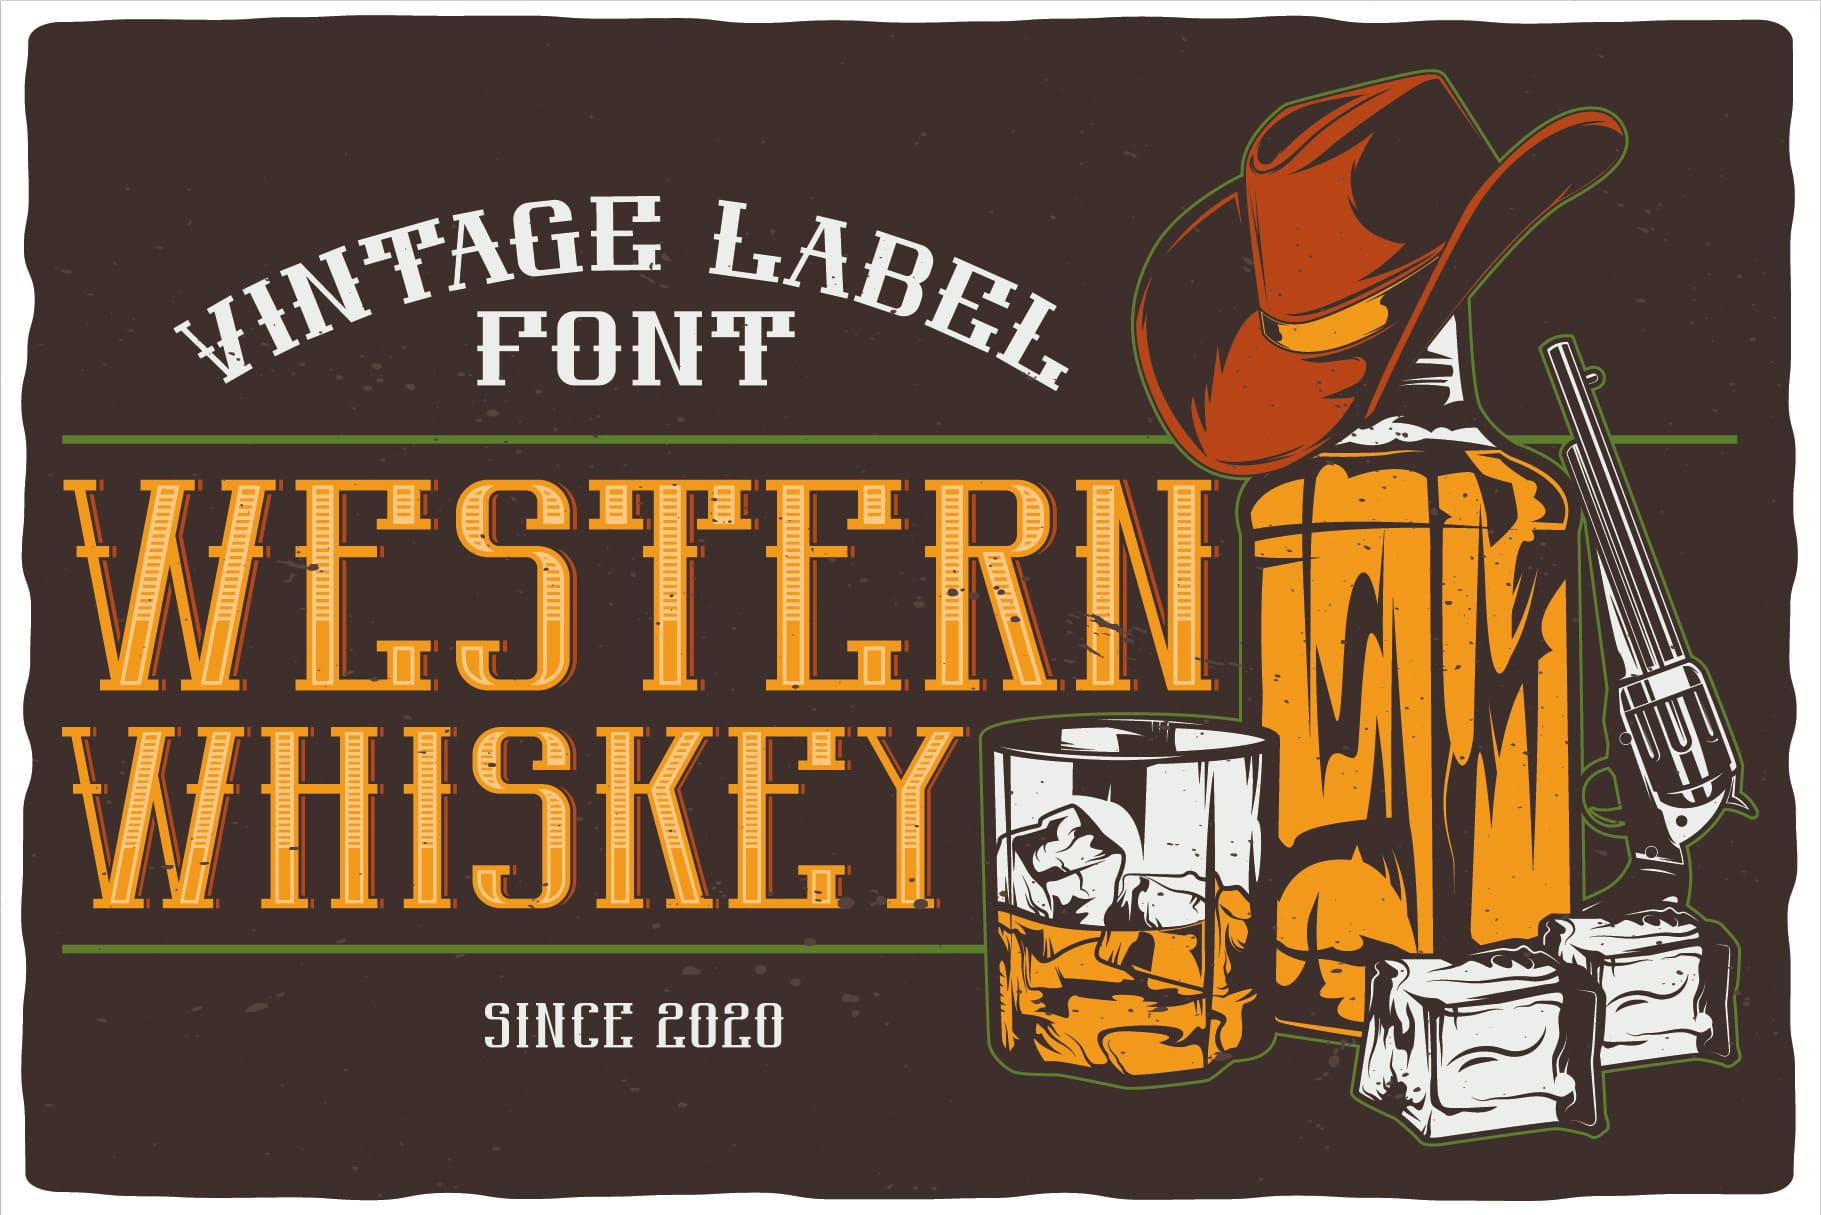 The font came from the Wild West with aged whiskey.